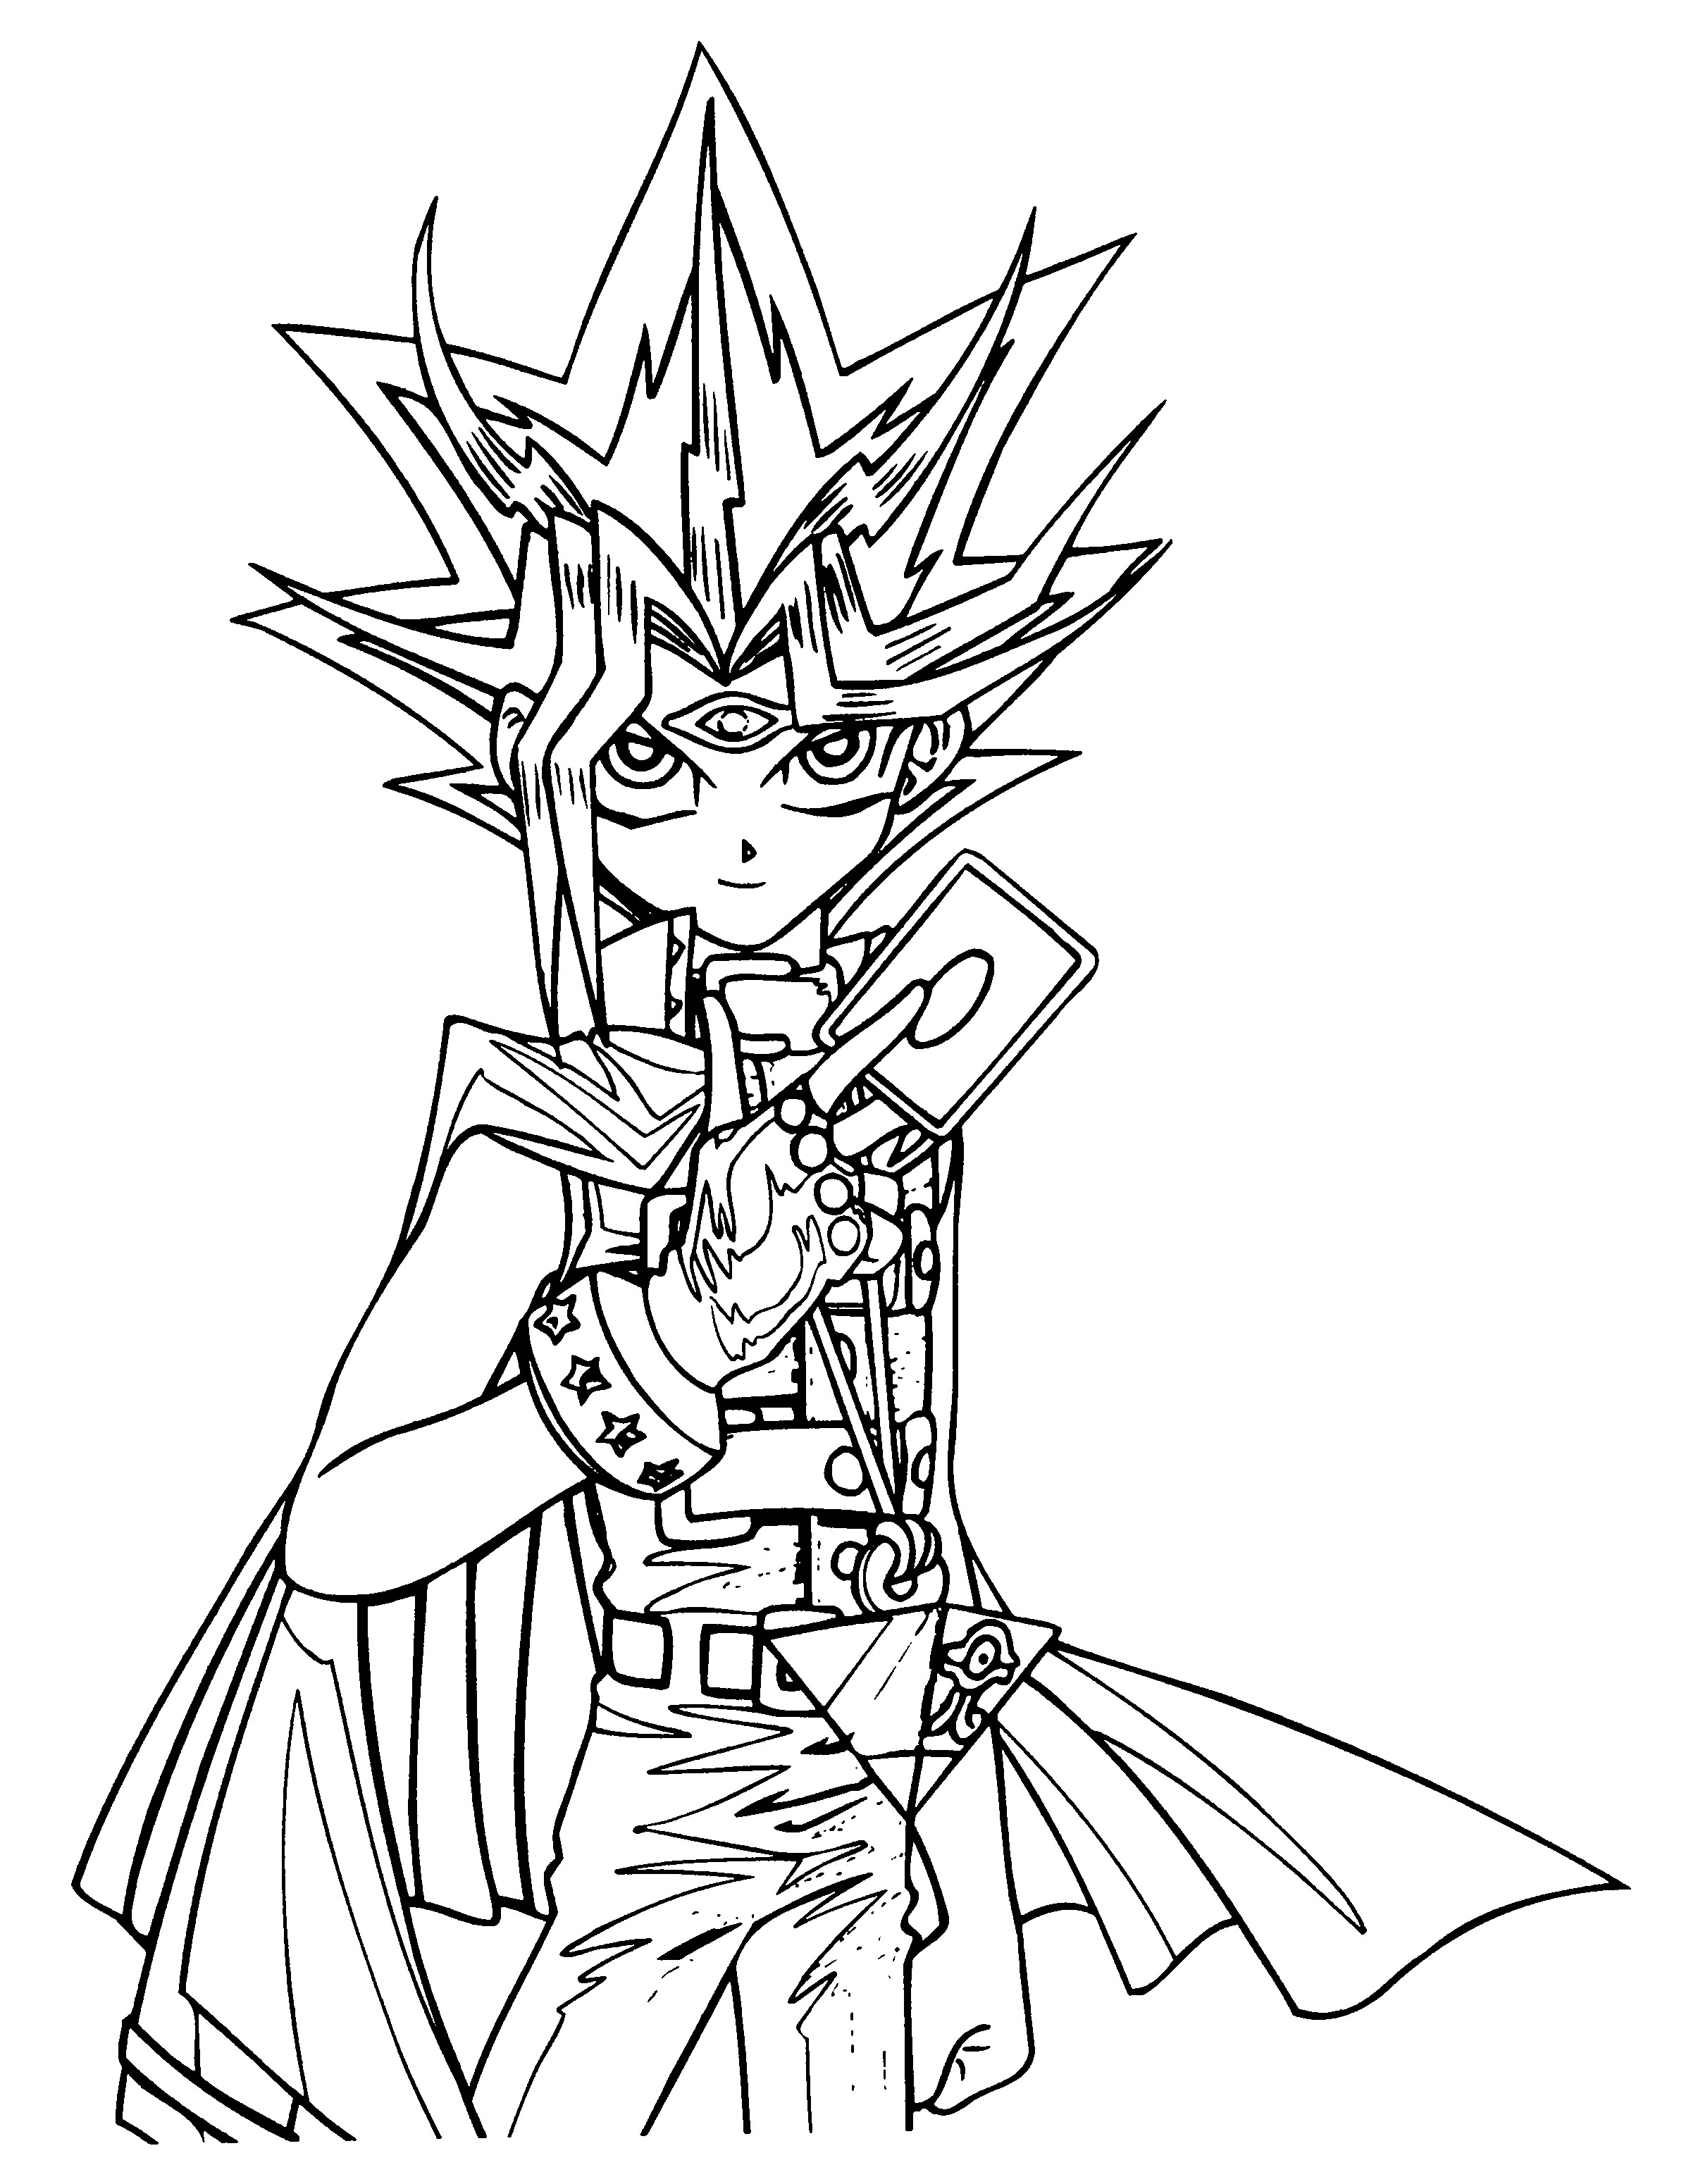 Yu gi oh monster coloring pages ~ Yugioh Coloring Pages | Free download best Yugioh Coloring ...